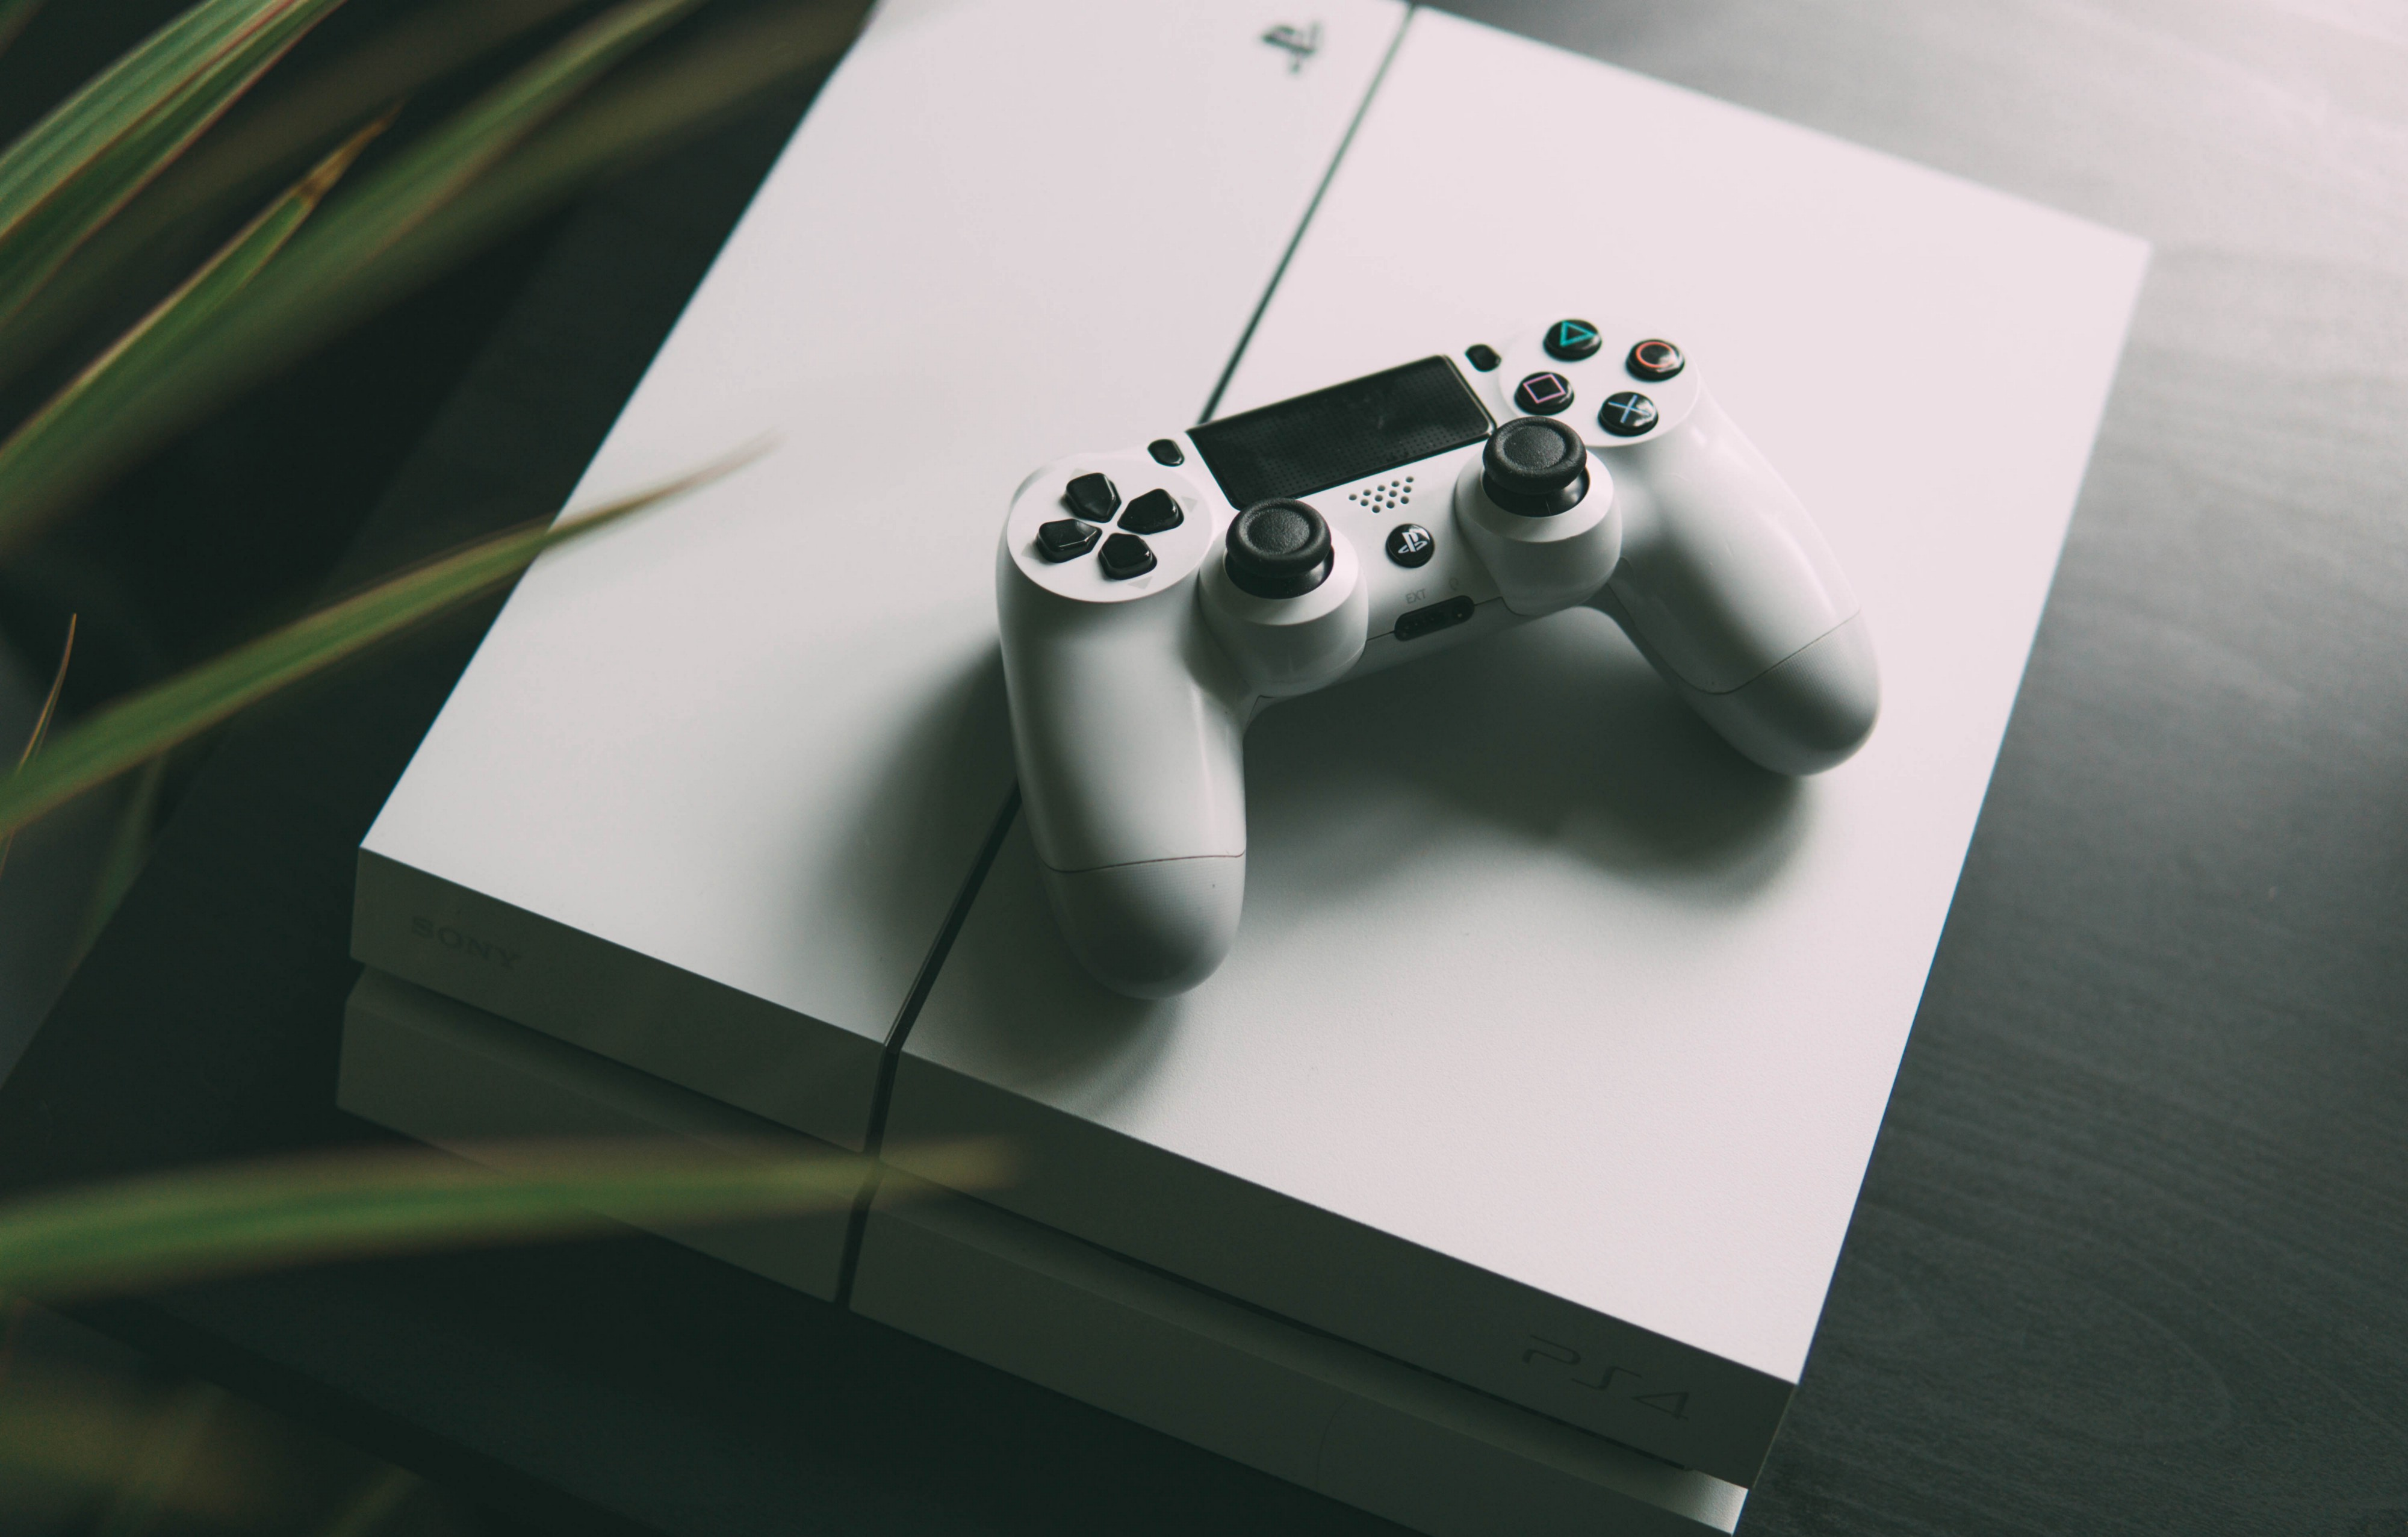 Python for PS4 dualshock 4 controller - Another Brick in the